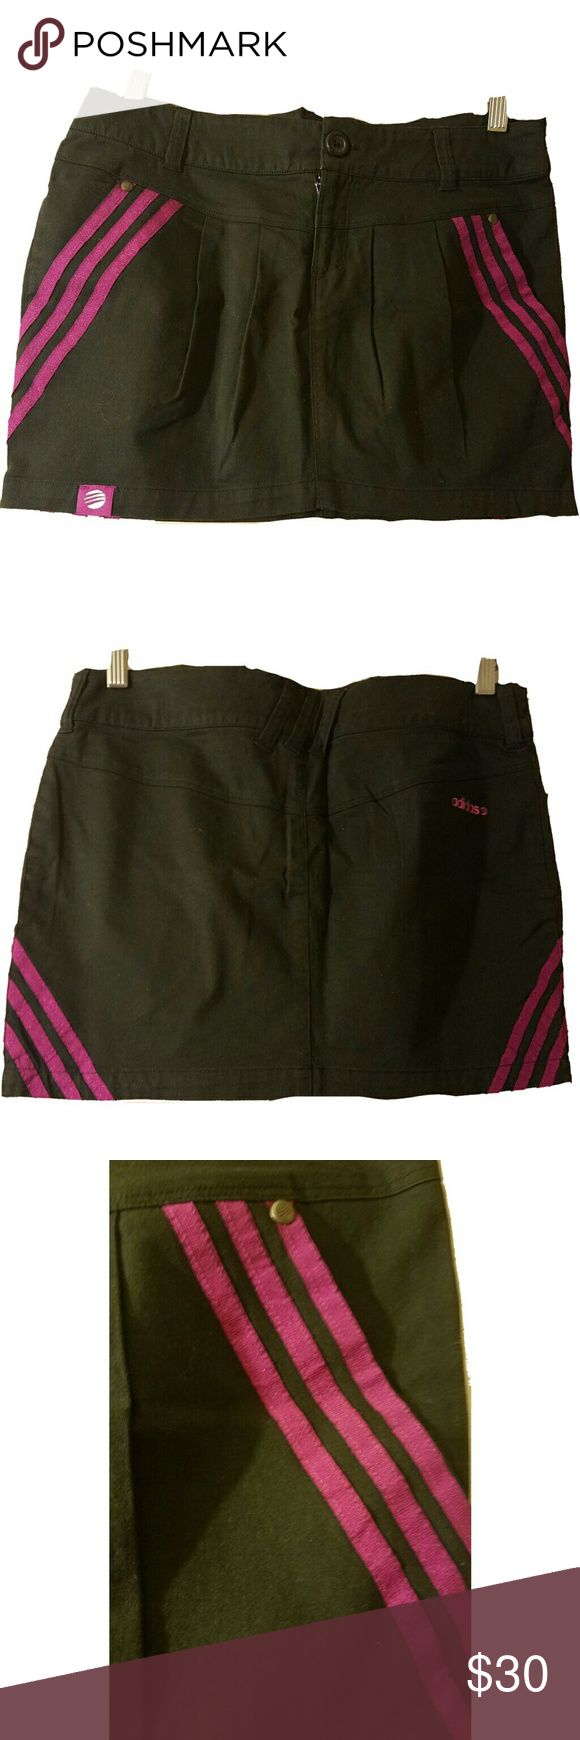 adidas Neo Mini Skirt, M Black mini skirt with purple-pink stripes, slight pleats in front for a tulip cut, zipper and button front closure, 2 slant front pockets, belt loops. Excellent condition.  Measurements: waist (32 in), hips (37 in), length (13 in) Adidas Skirts Mini